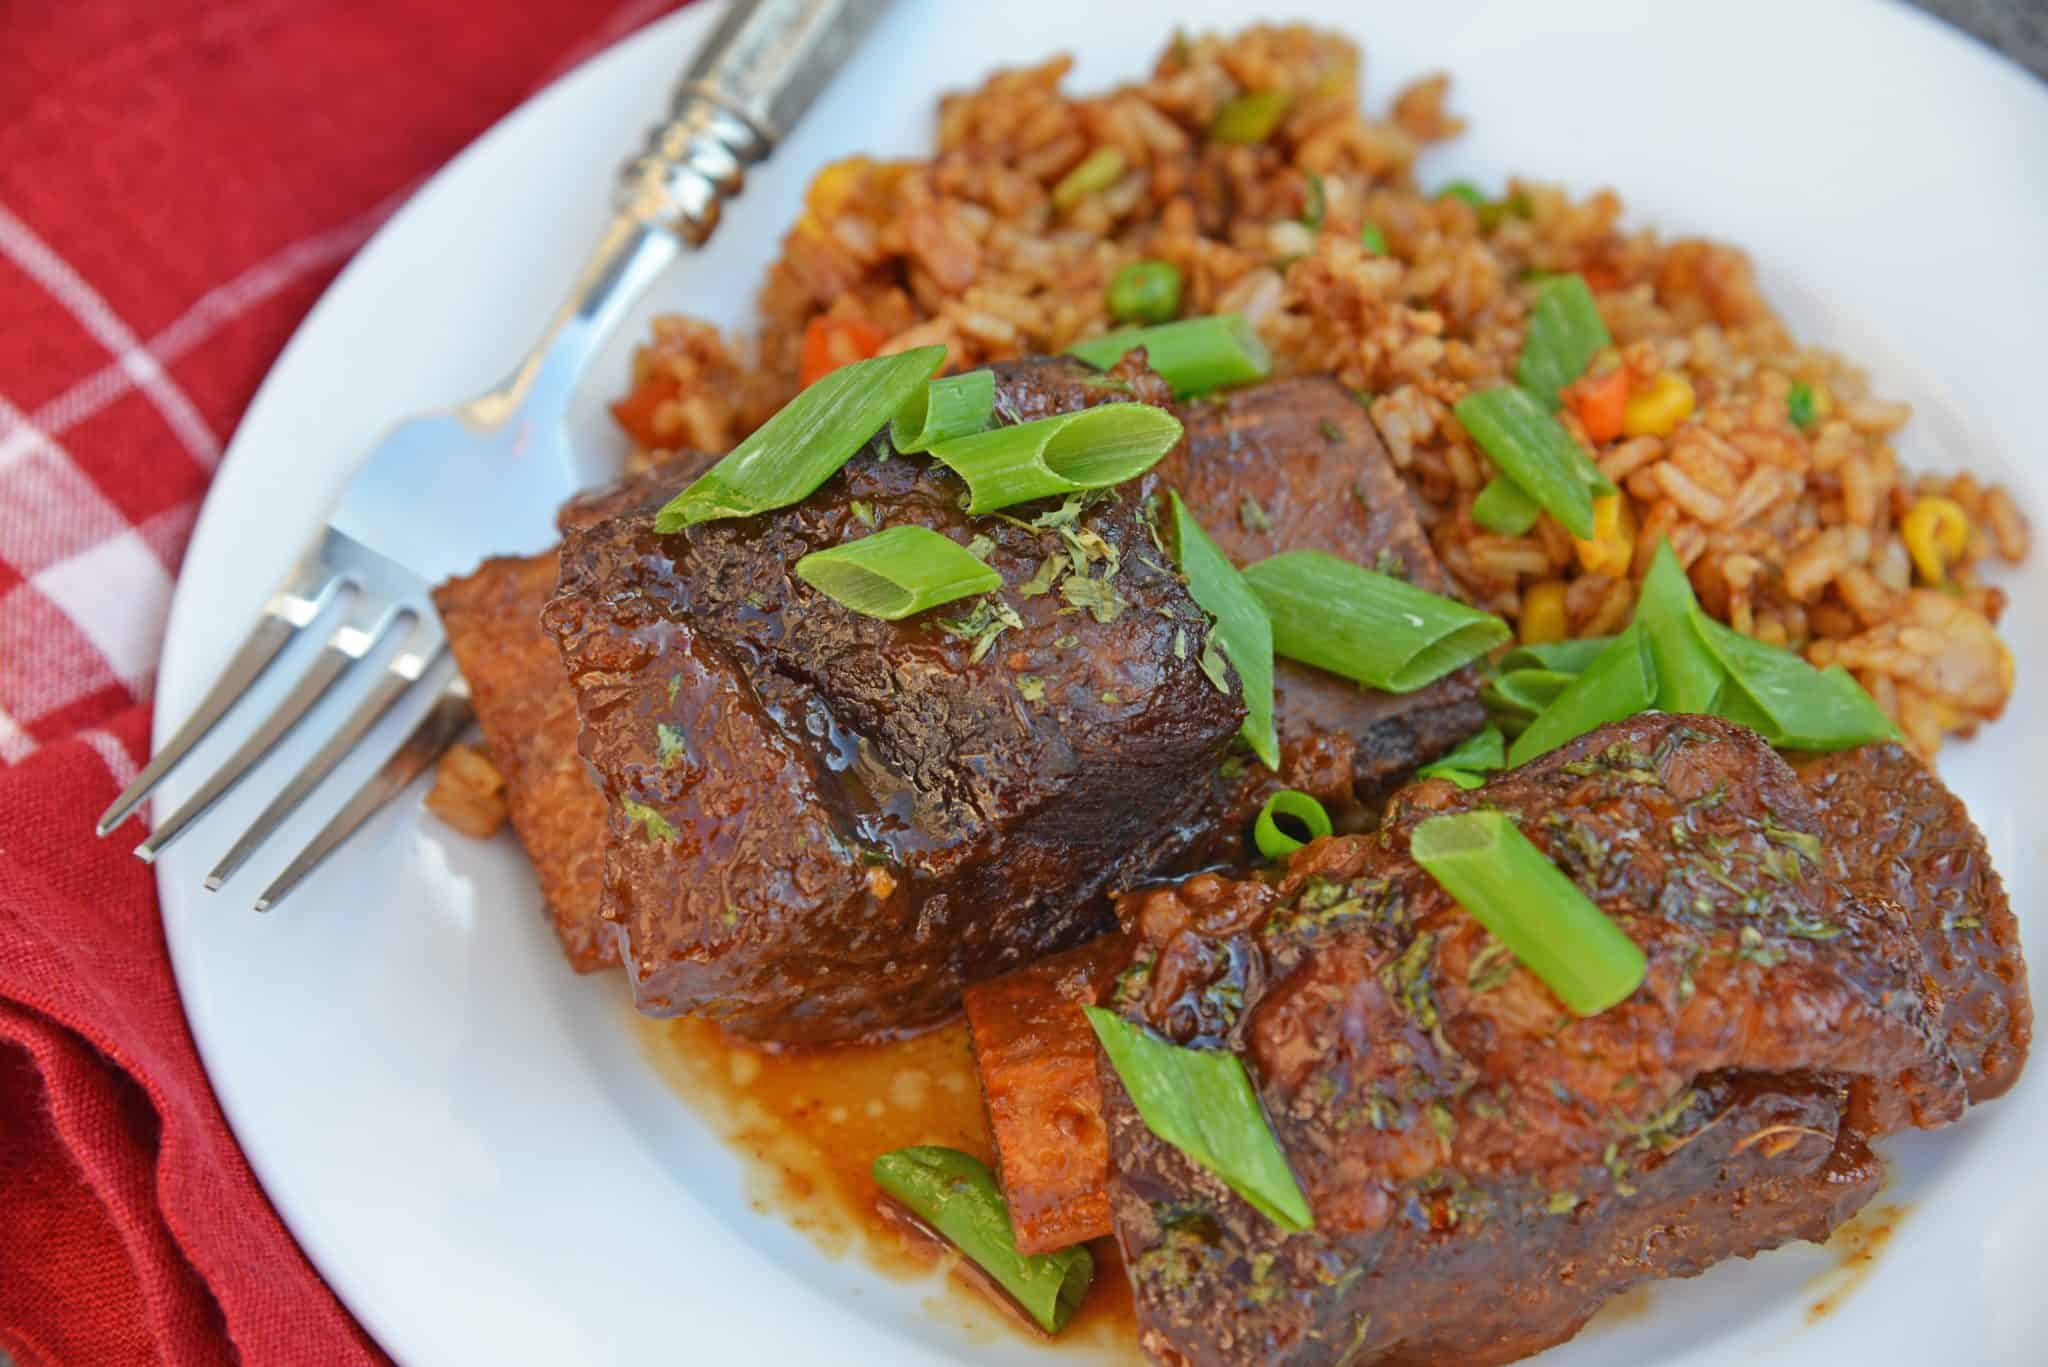 Honey Ginger Short Ribs are a zesty and sweet, fall off the bone short rib recipe, braised to perfection and served with the best fried rice ever!